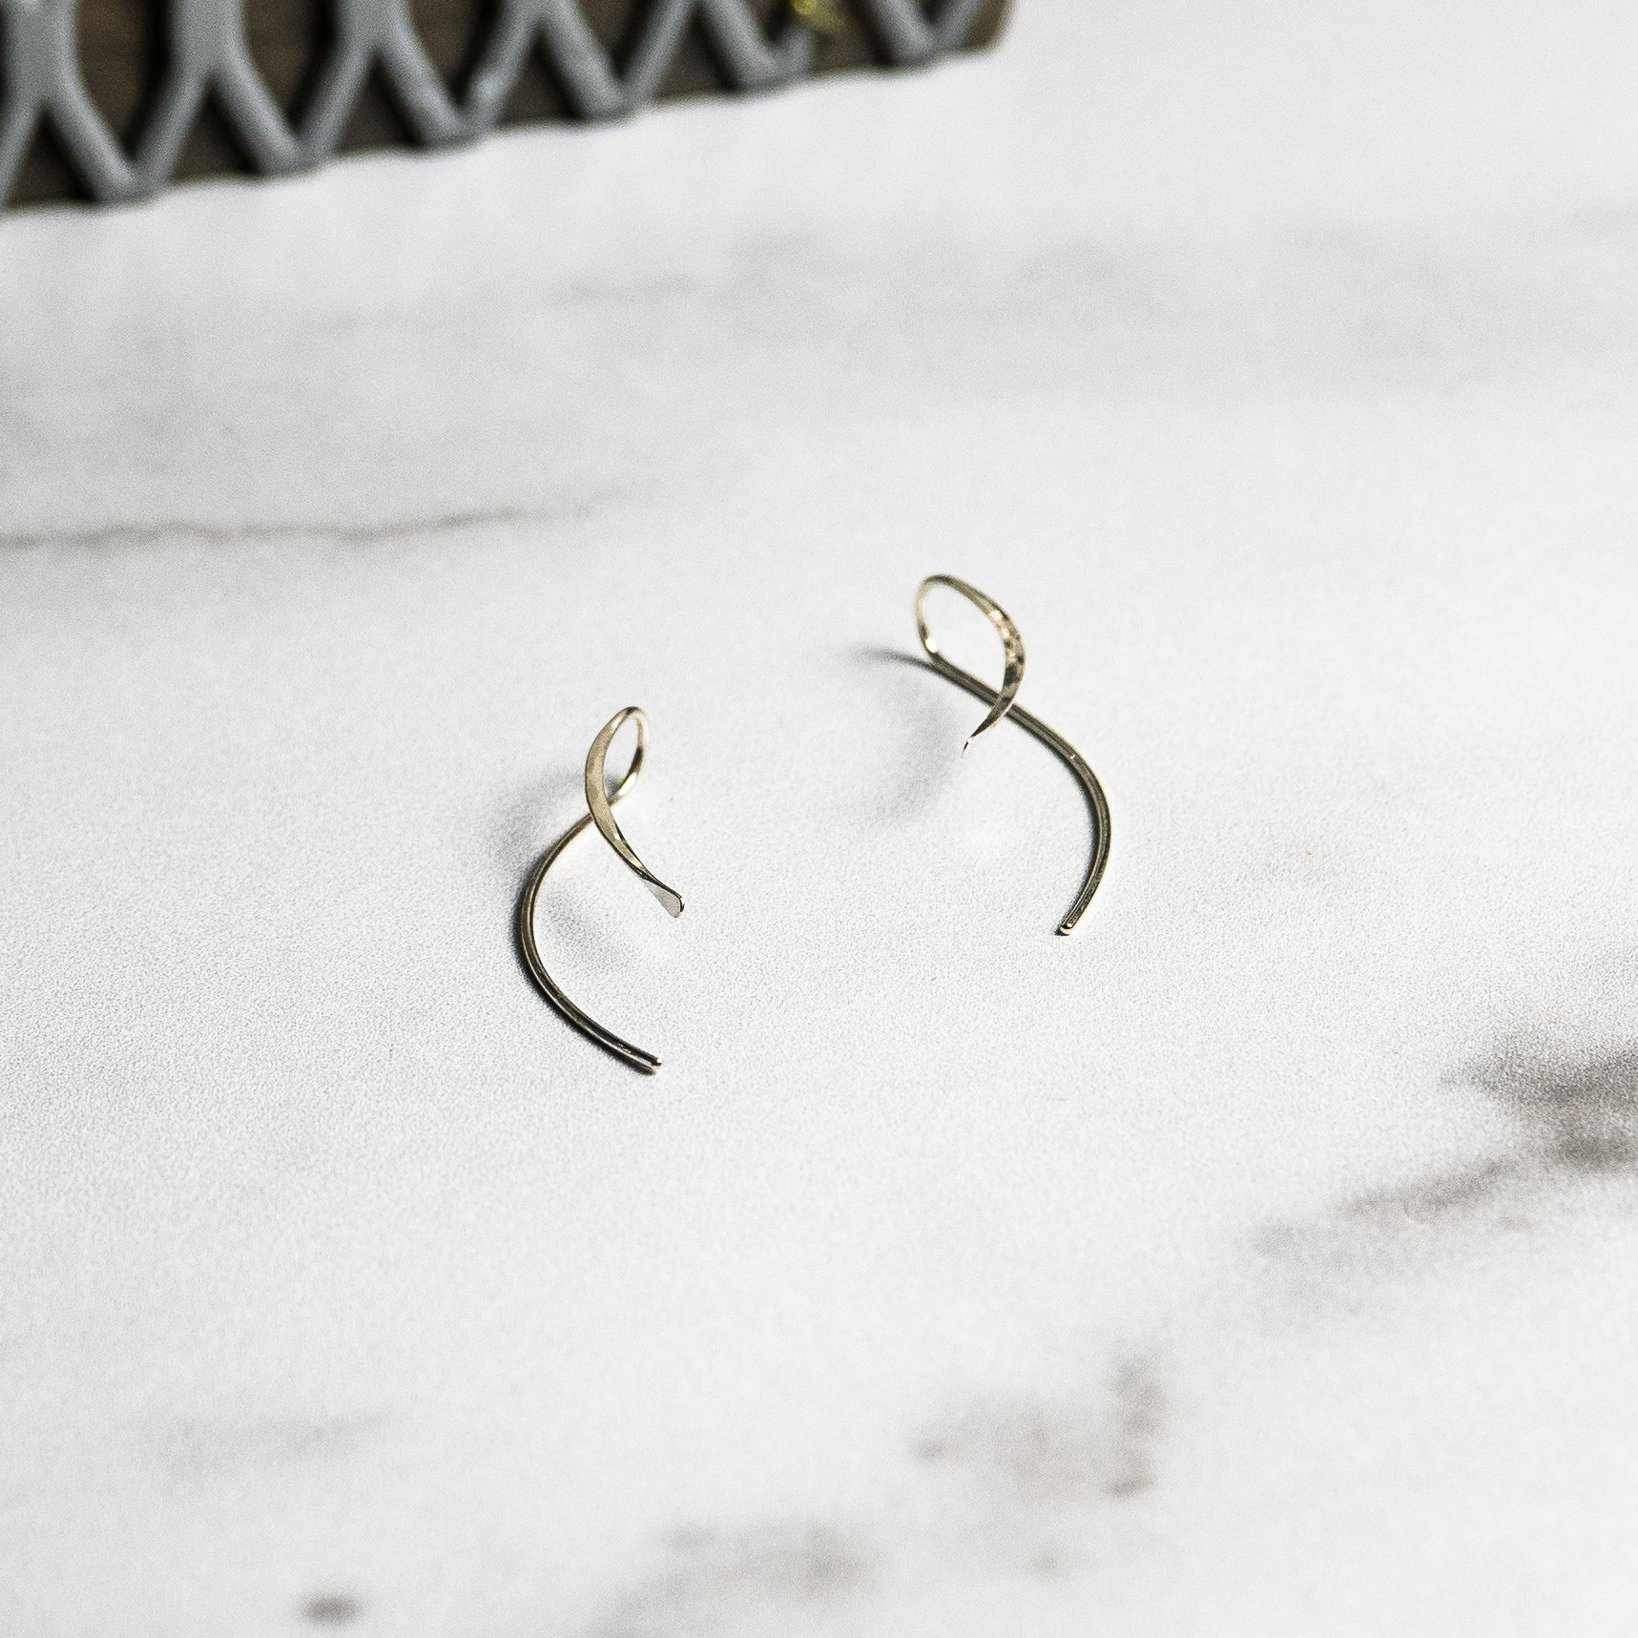 Sterling Silver Curved Earrings - Edgecomb Potters